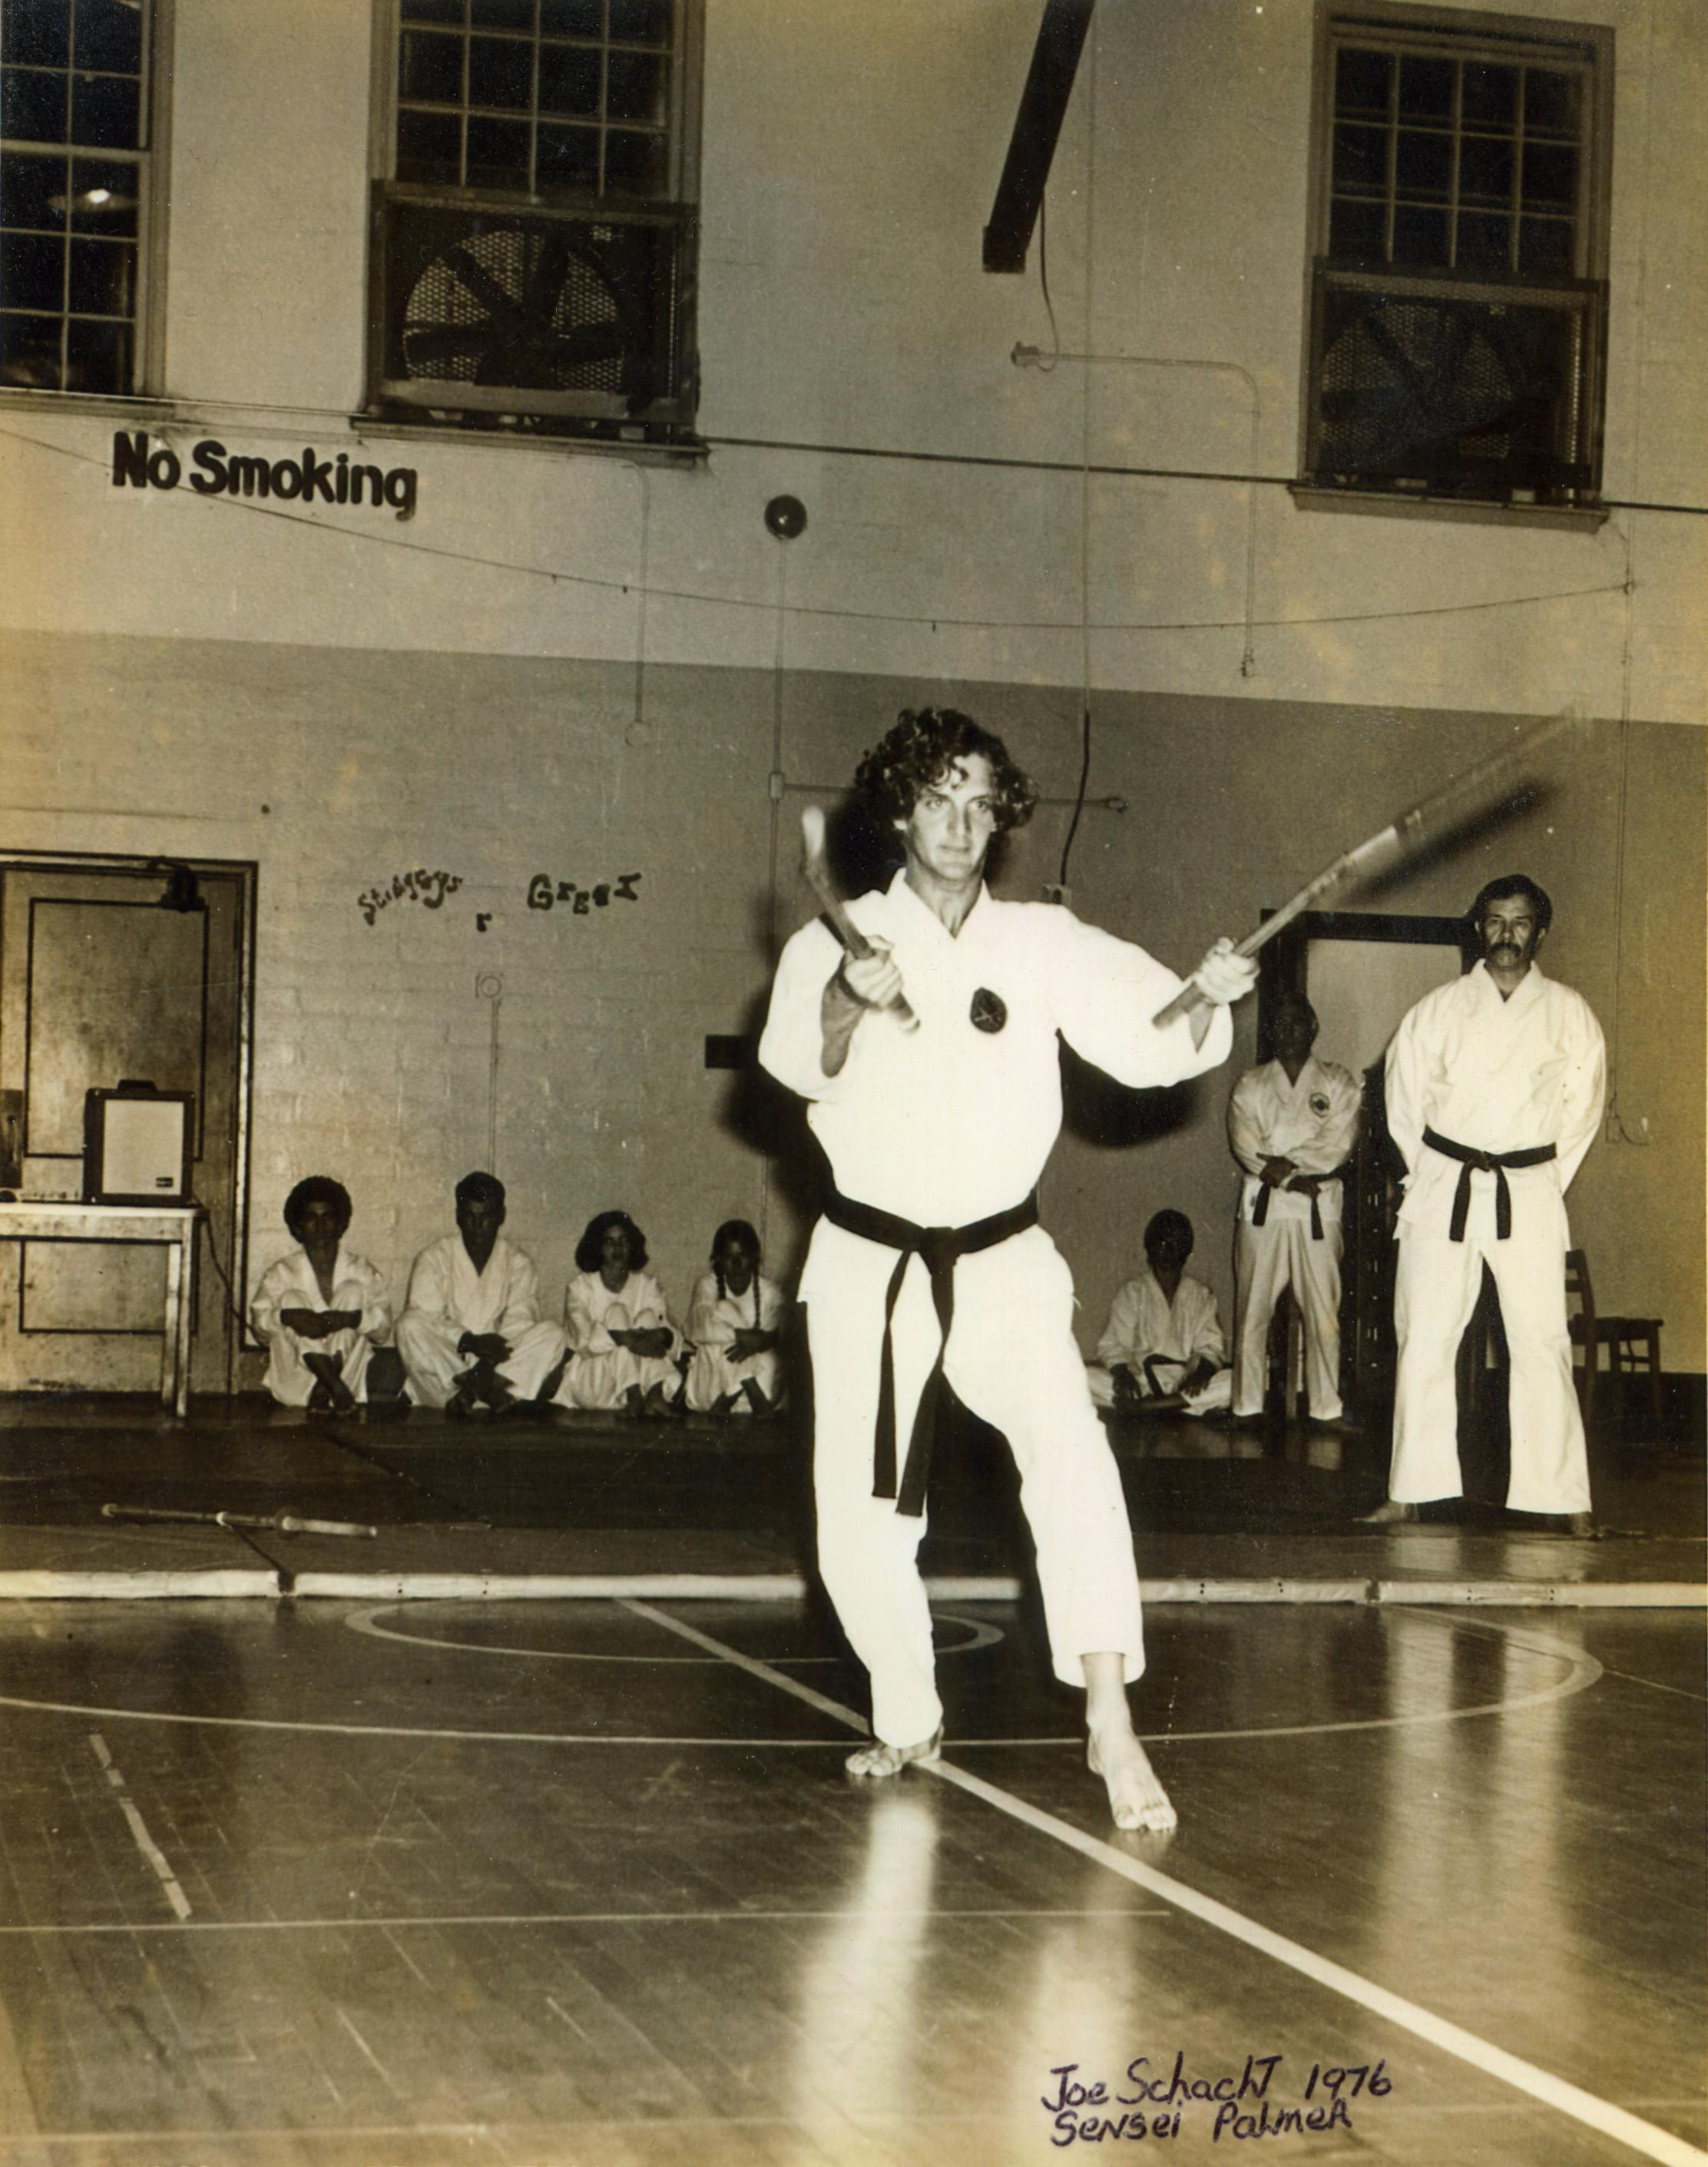 Sensei Joe Schacht demonstrating nunchaku's under the watchful eye of Renshi Sam Palmer